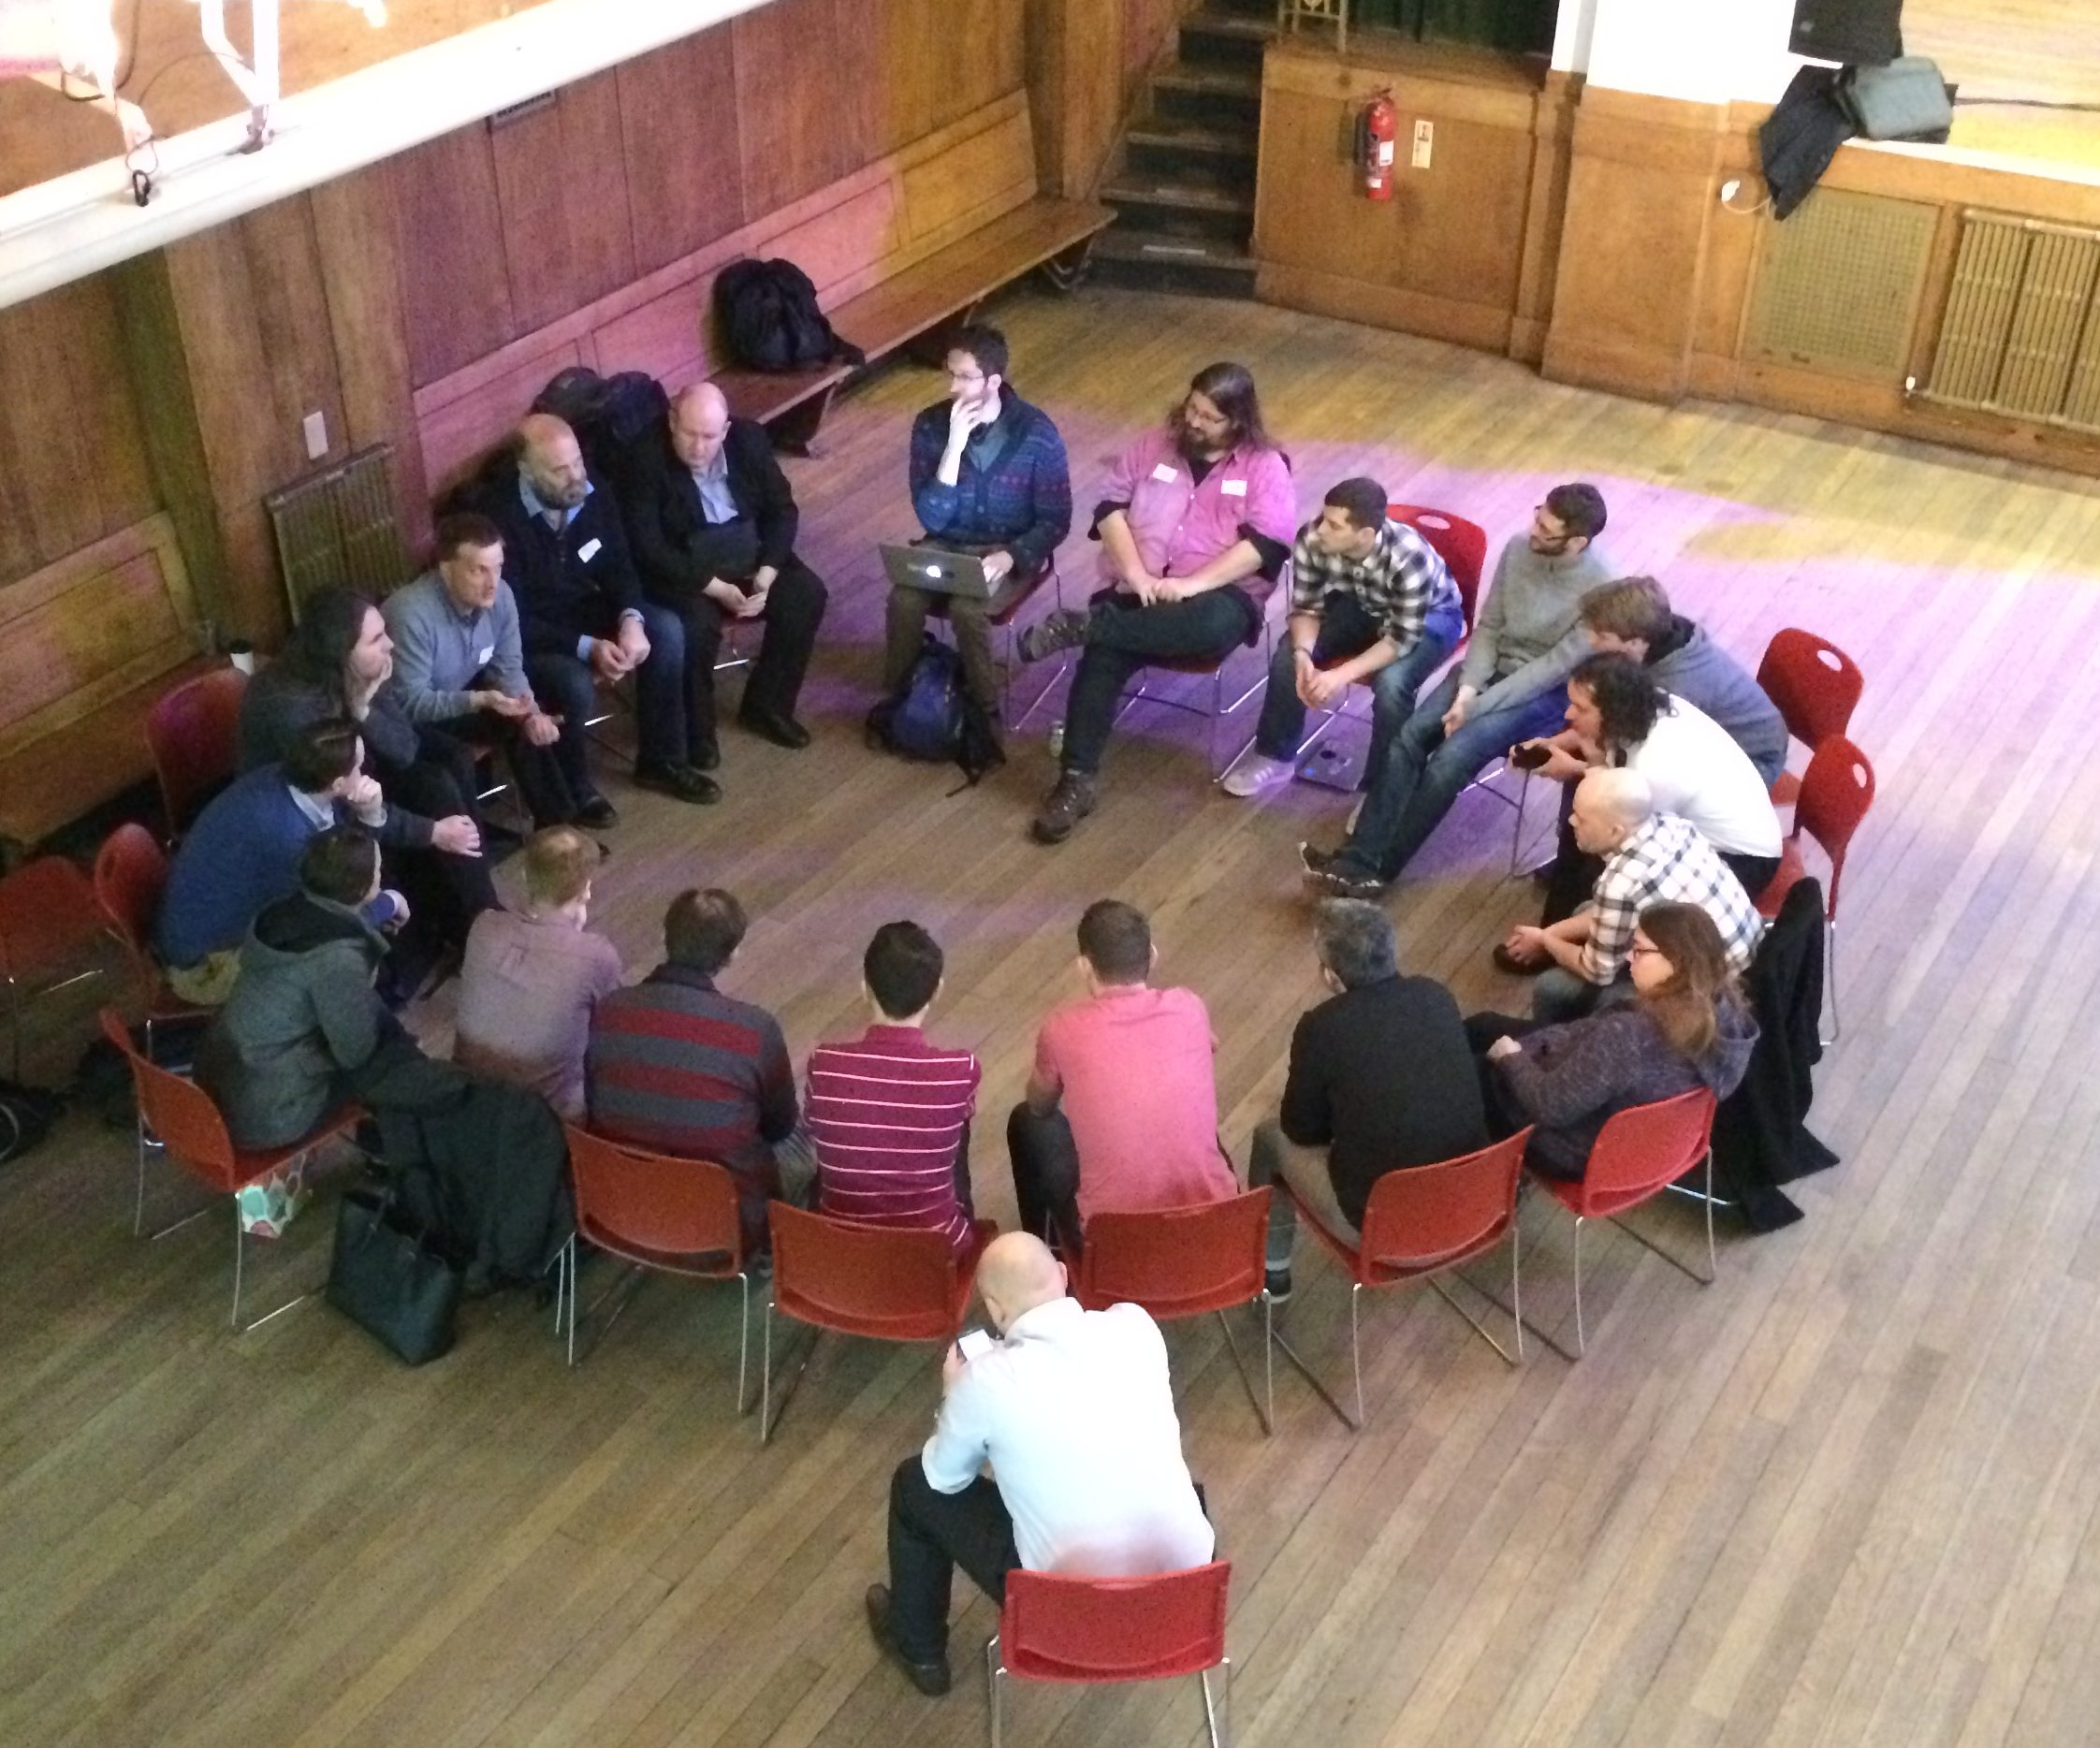 Attendees sitting in a discussion circle